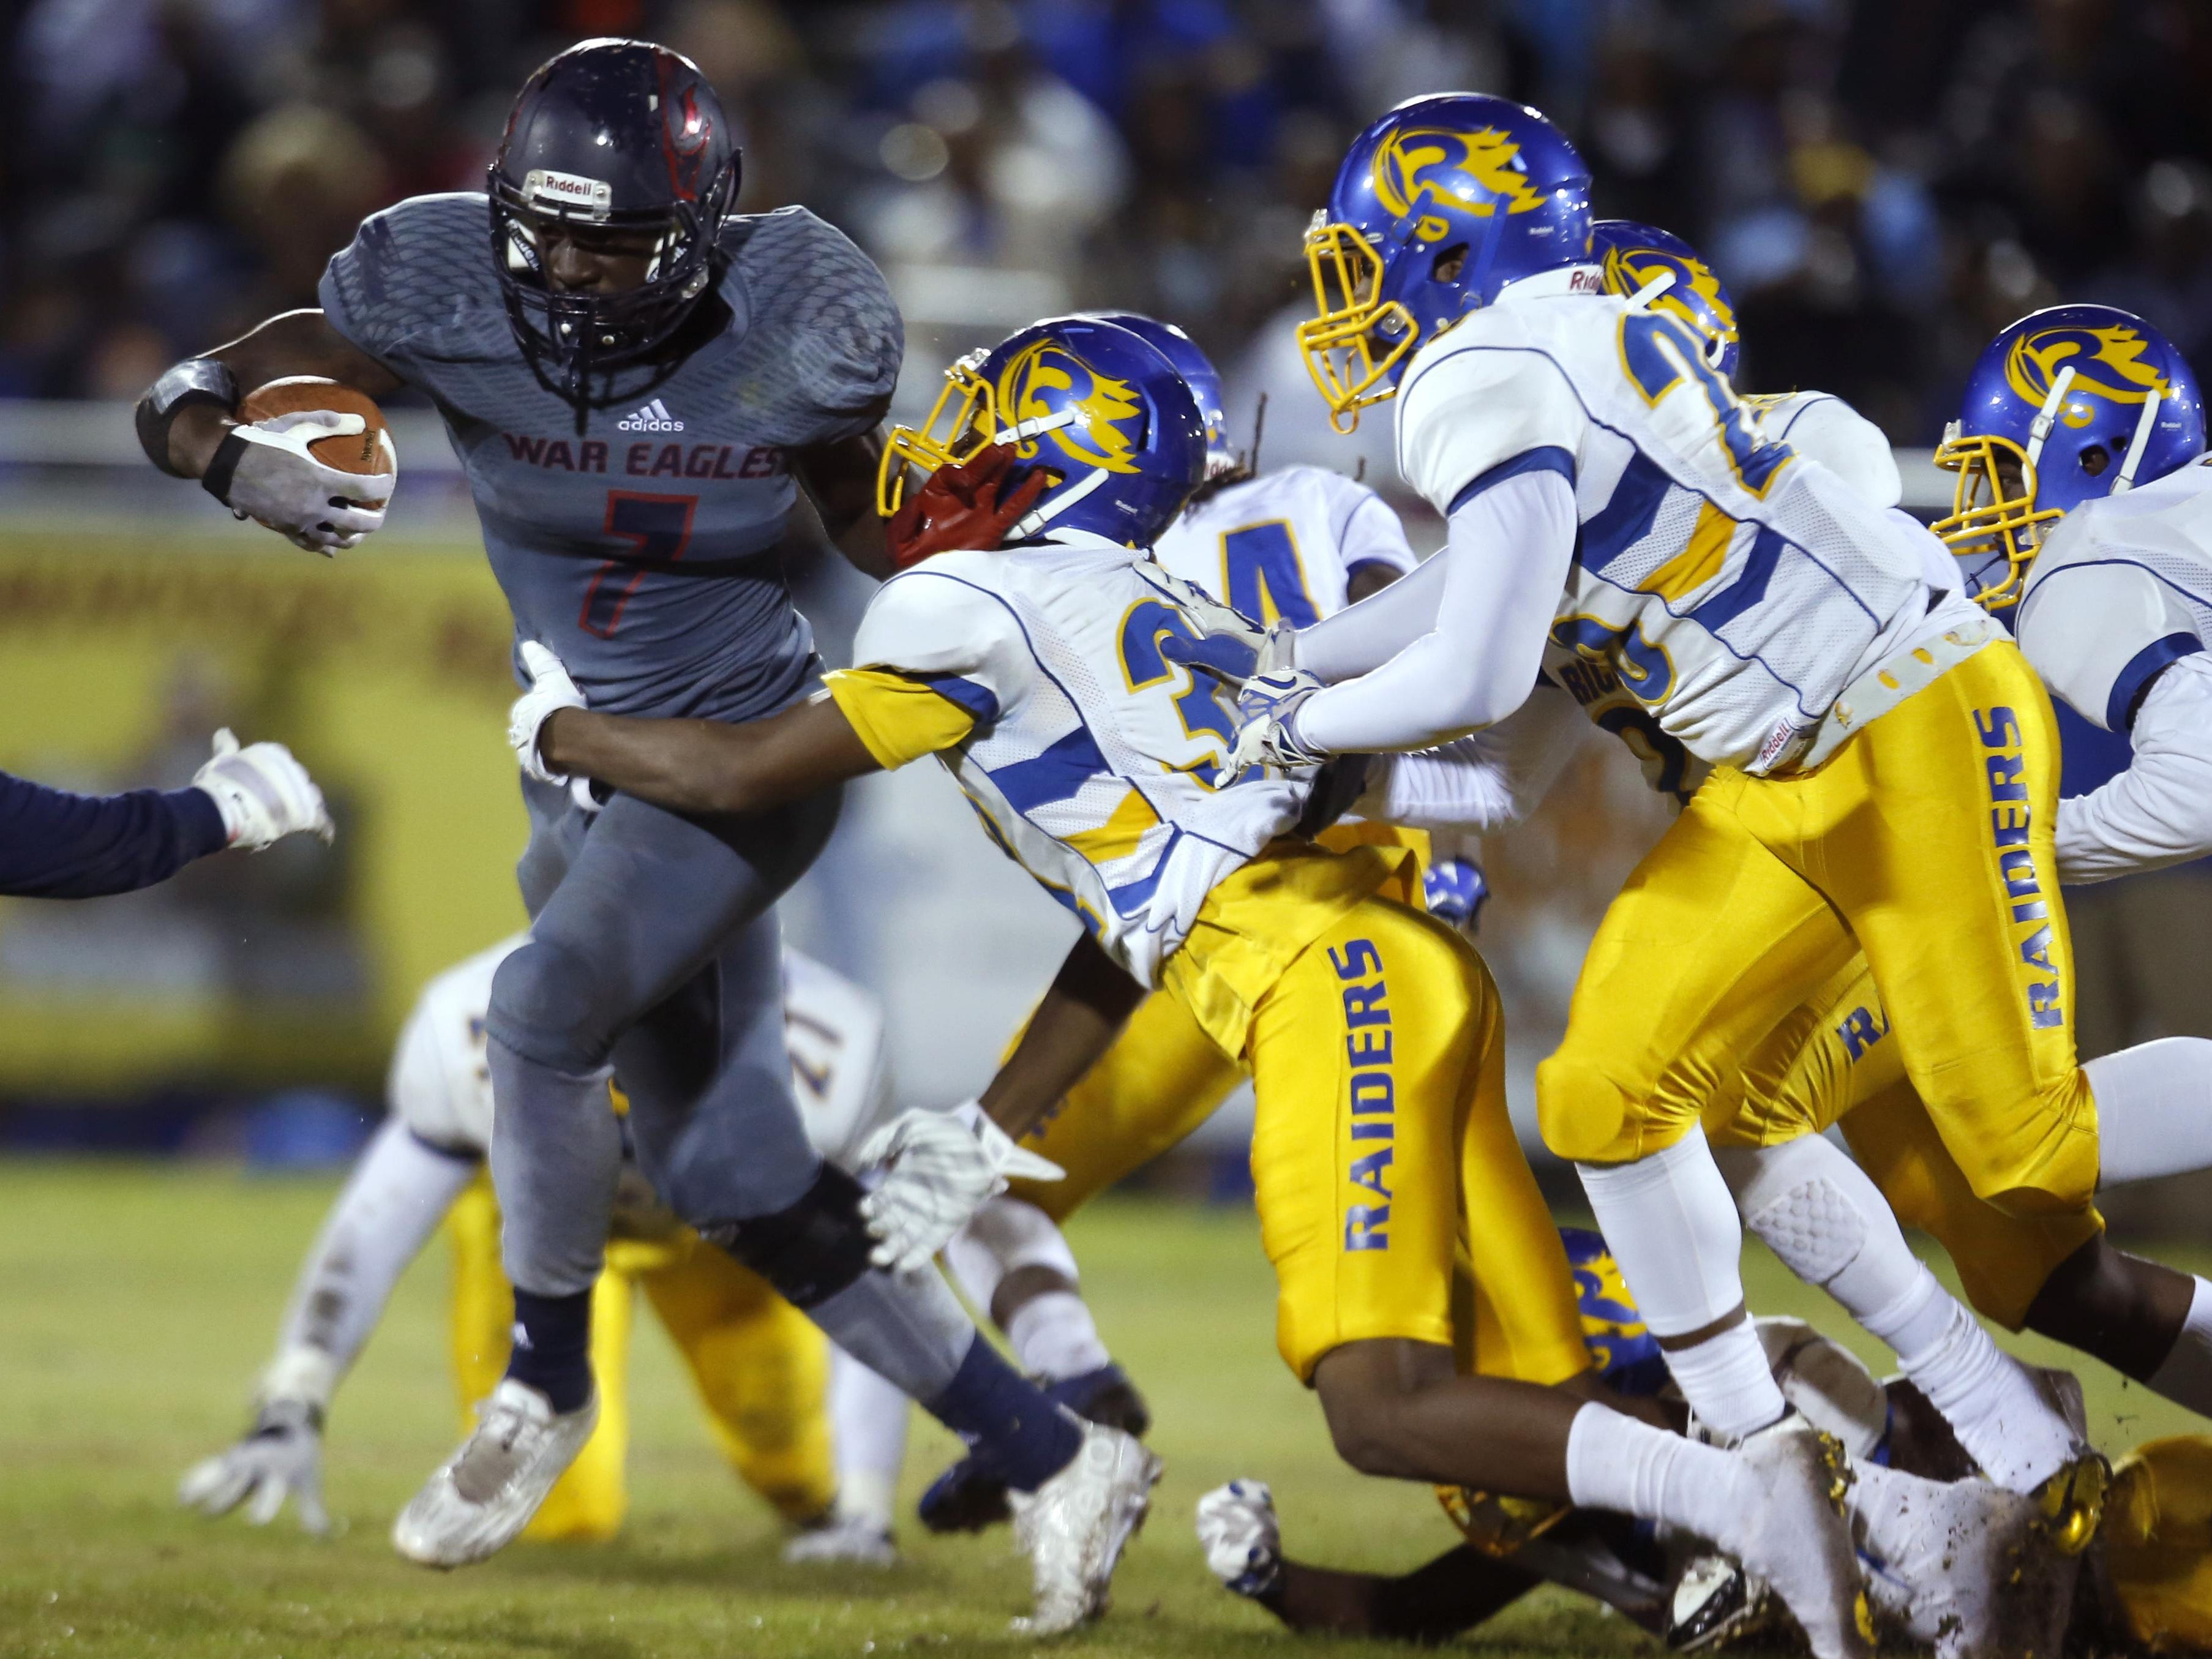 Wakulla's Keith Gavin breaks away from a multitude of Rickards defenders during a punt return for a touchdown in their playoff game two weeks ago.